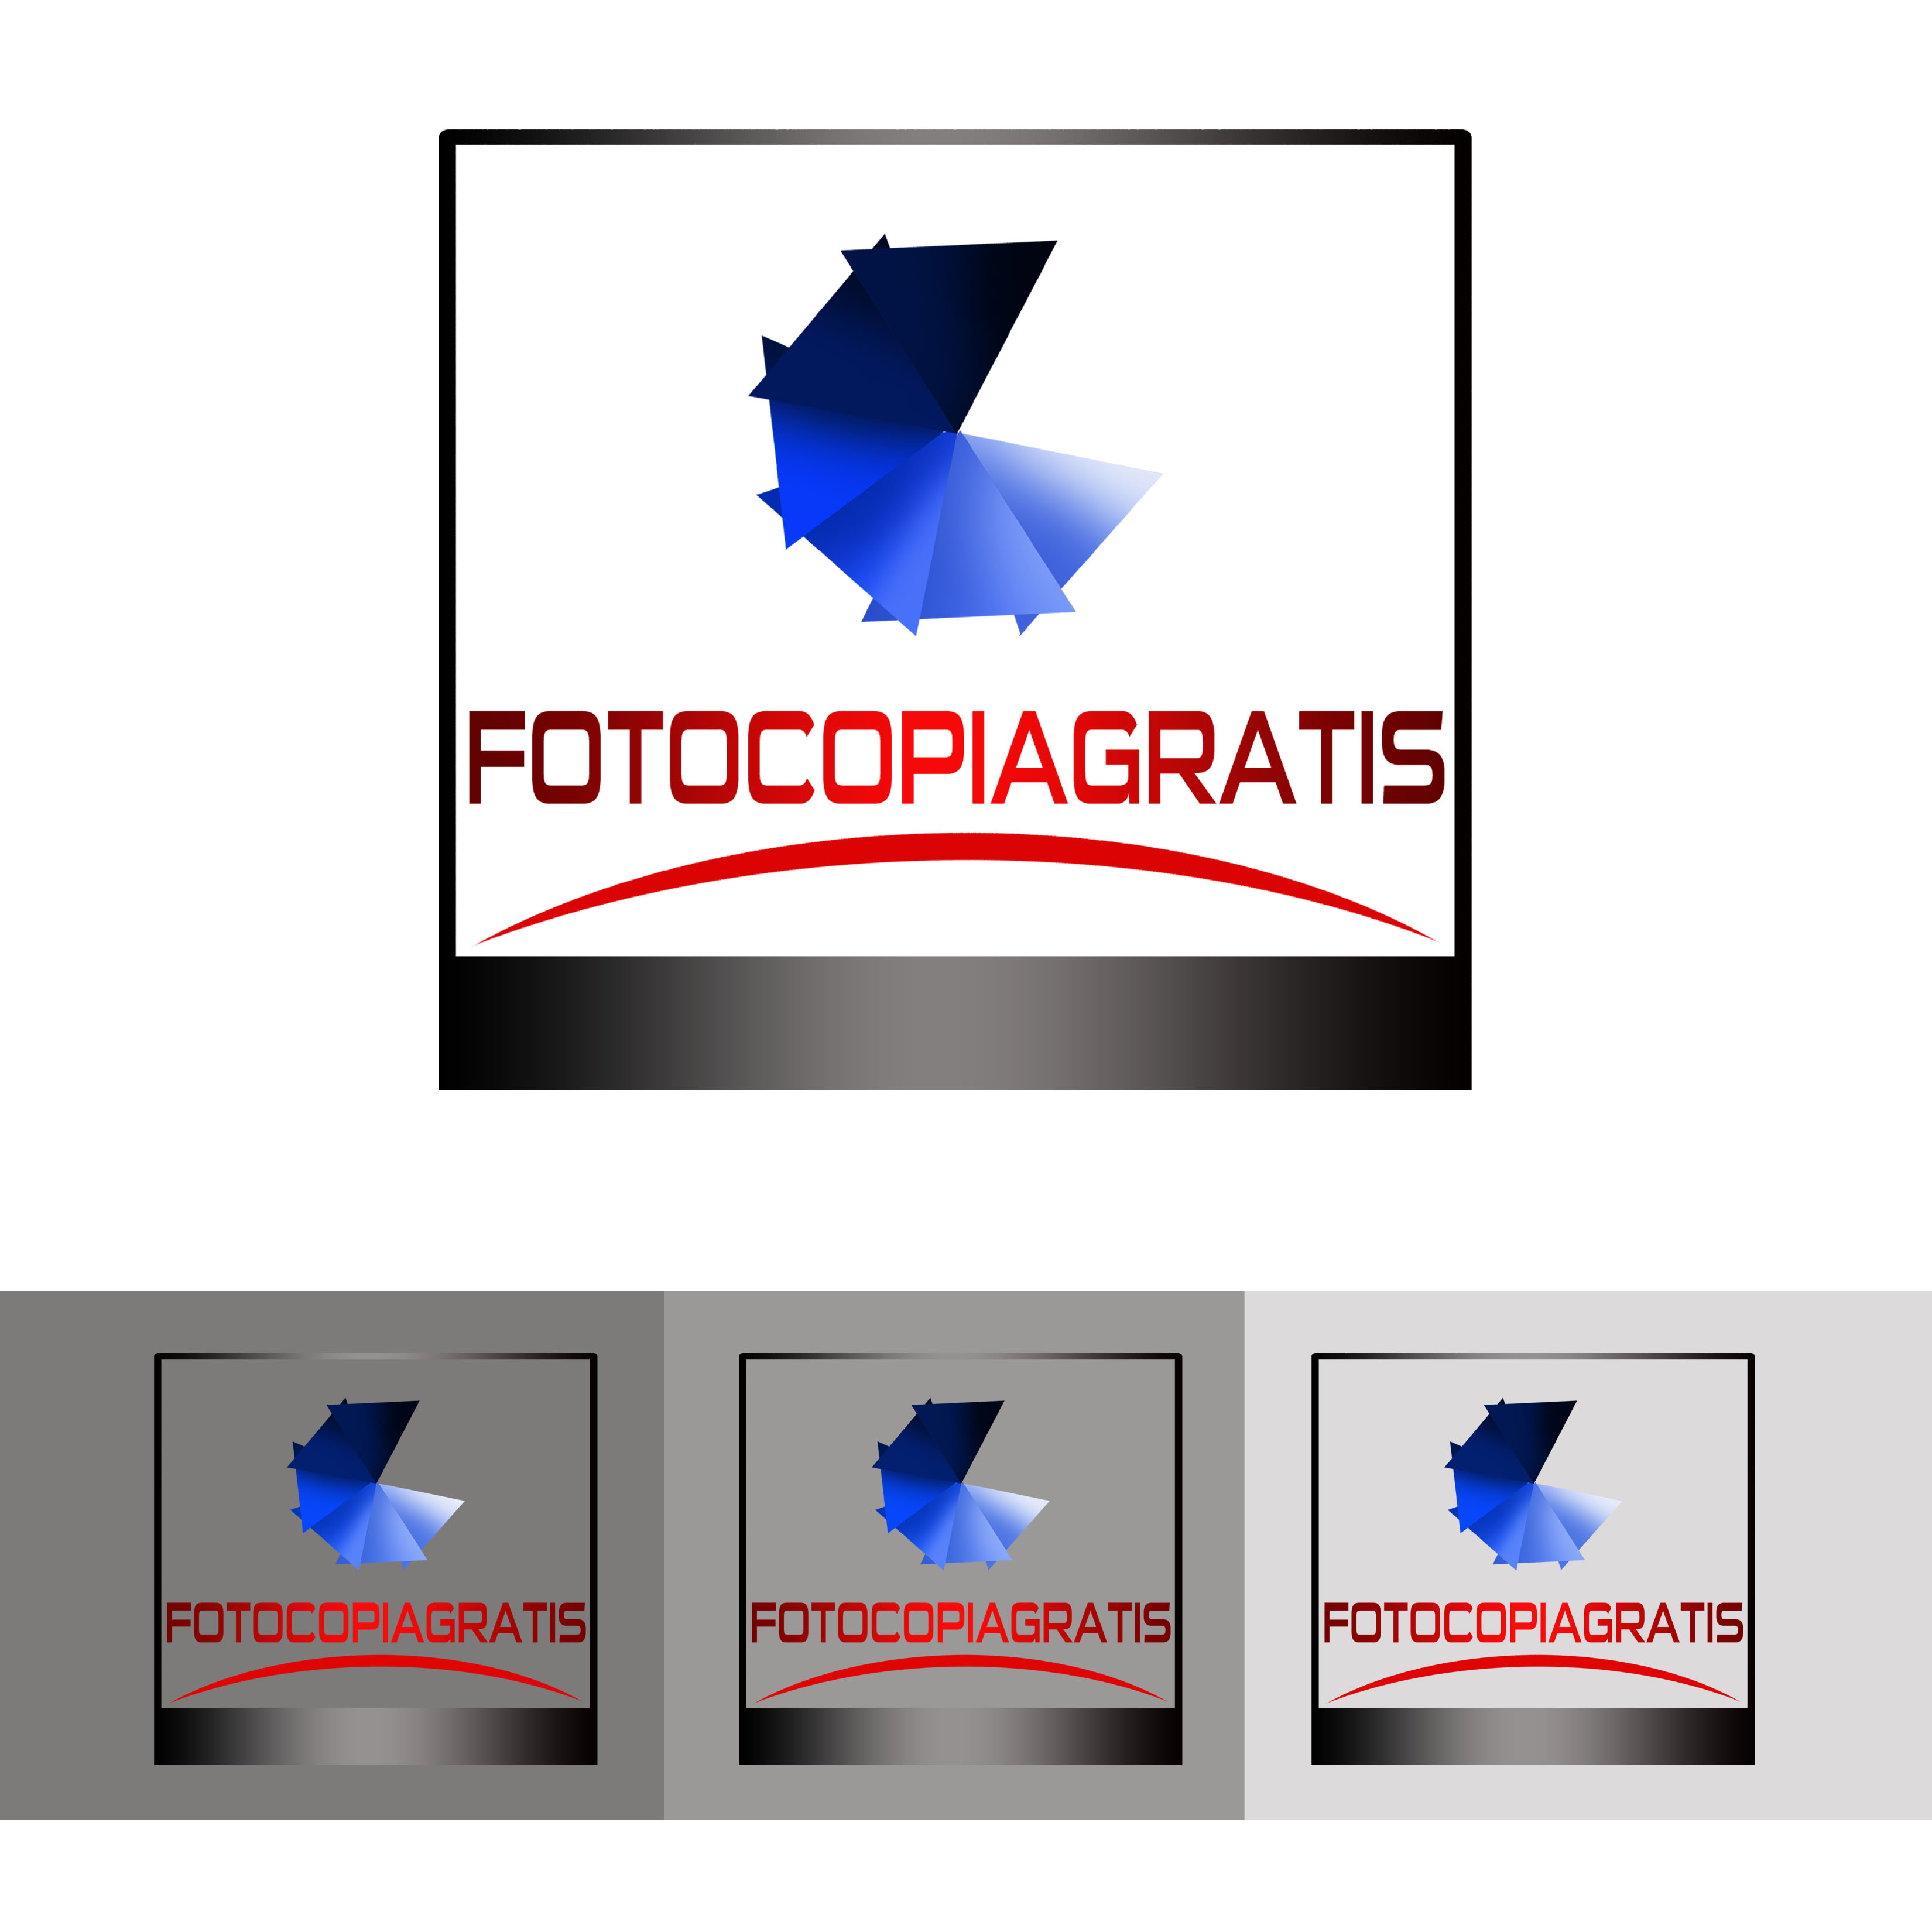 Logo Design by Alan Esclamado - Entry No. 20 in the Logo Design Contest Inspiring Logo Design for Fotocopiagratis.